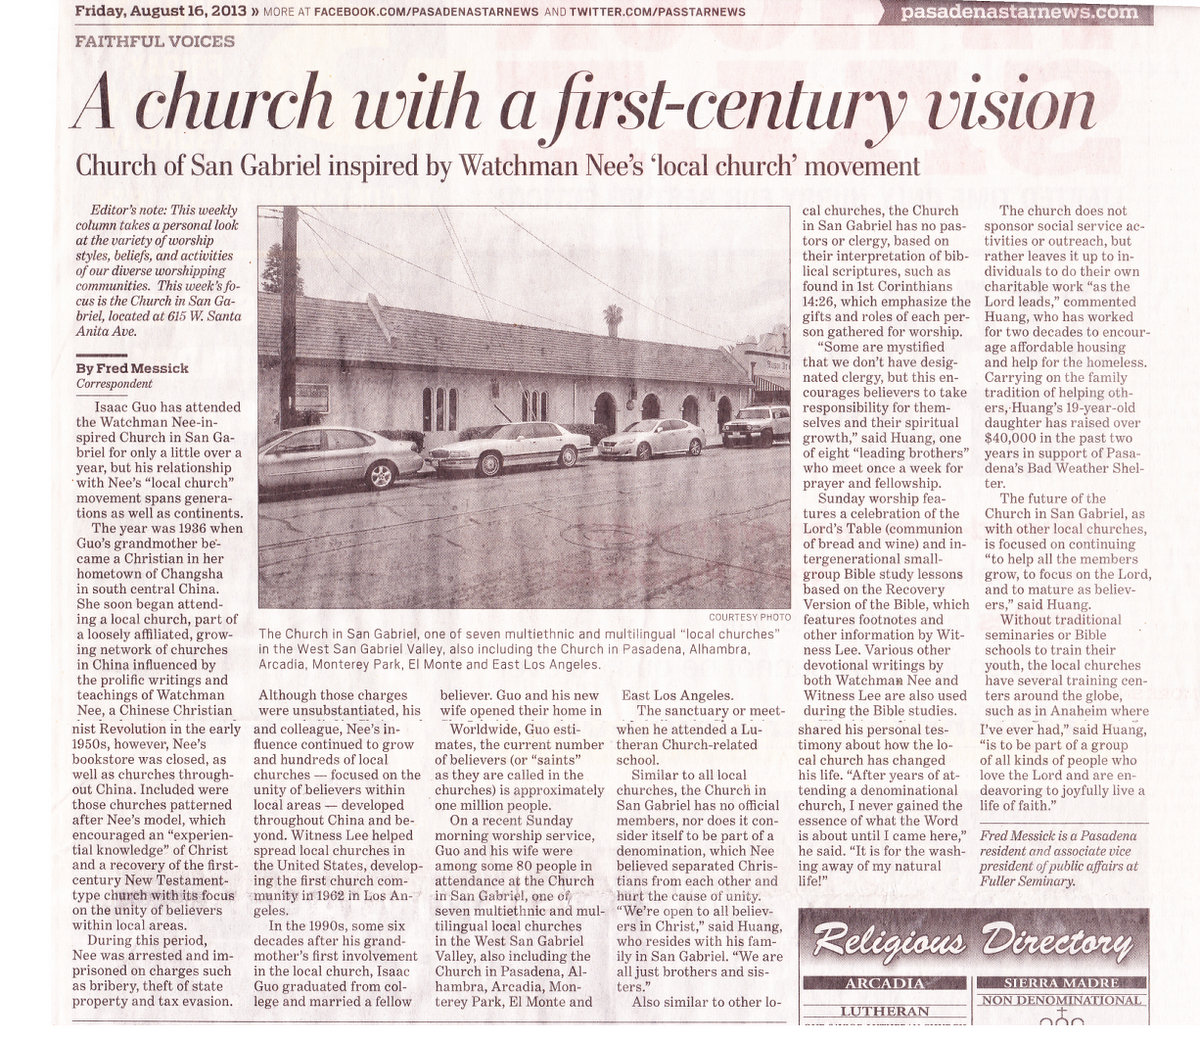 Church in San Gabriel Article in the Pasadena Star News by Fred Messick Correspondent